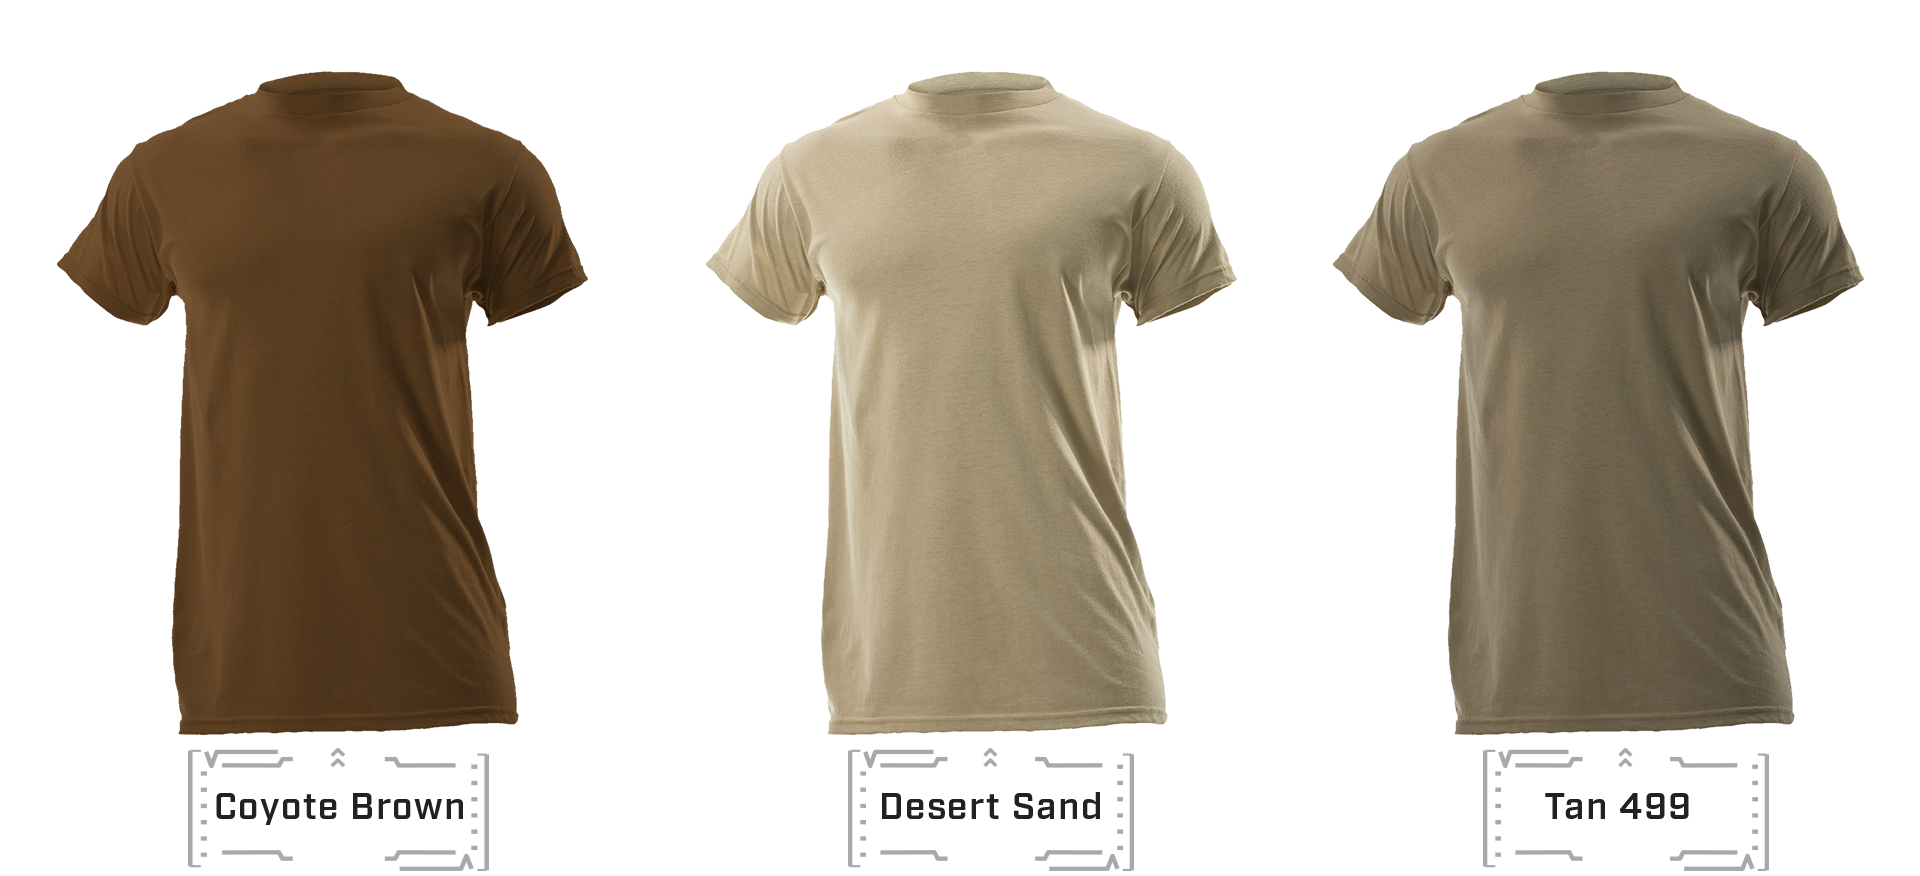 Tan 499, Coyote 498, and Desert Sand shirt comparison